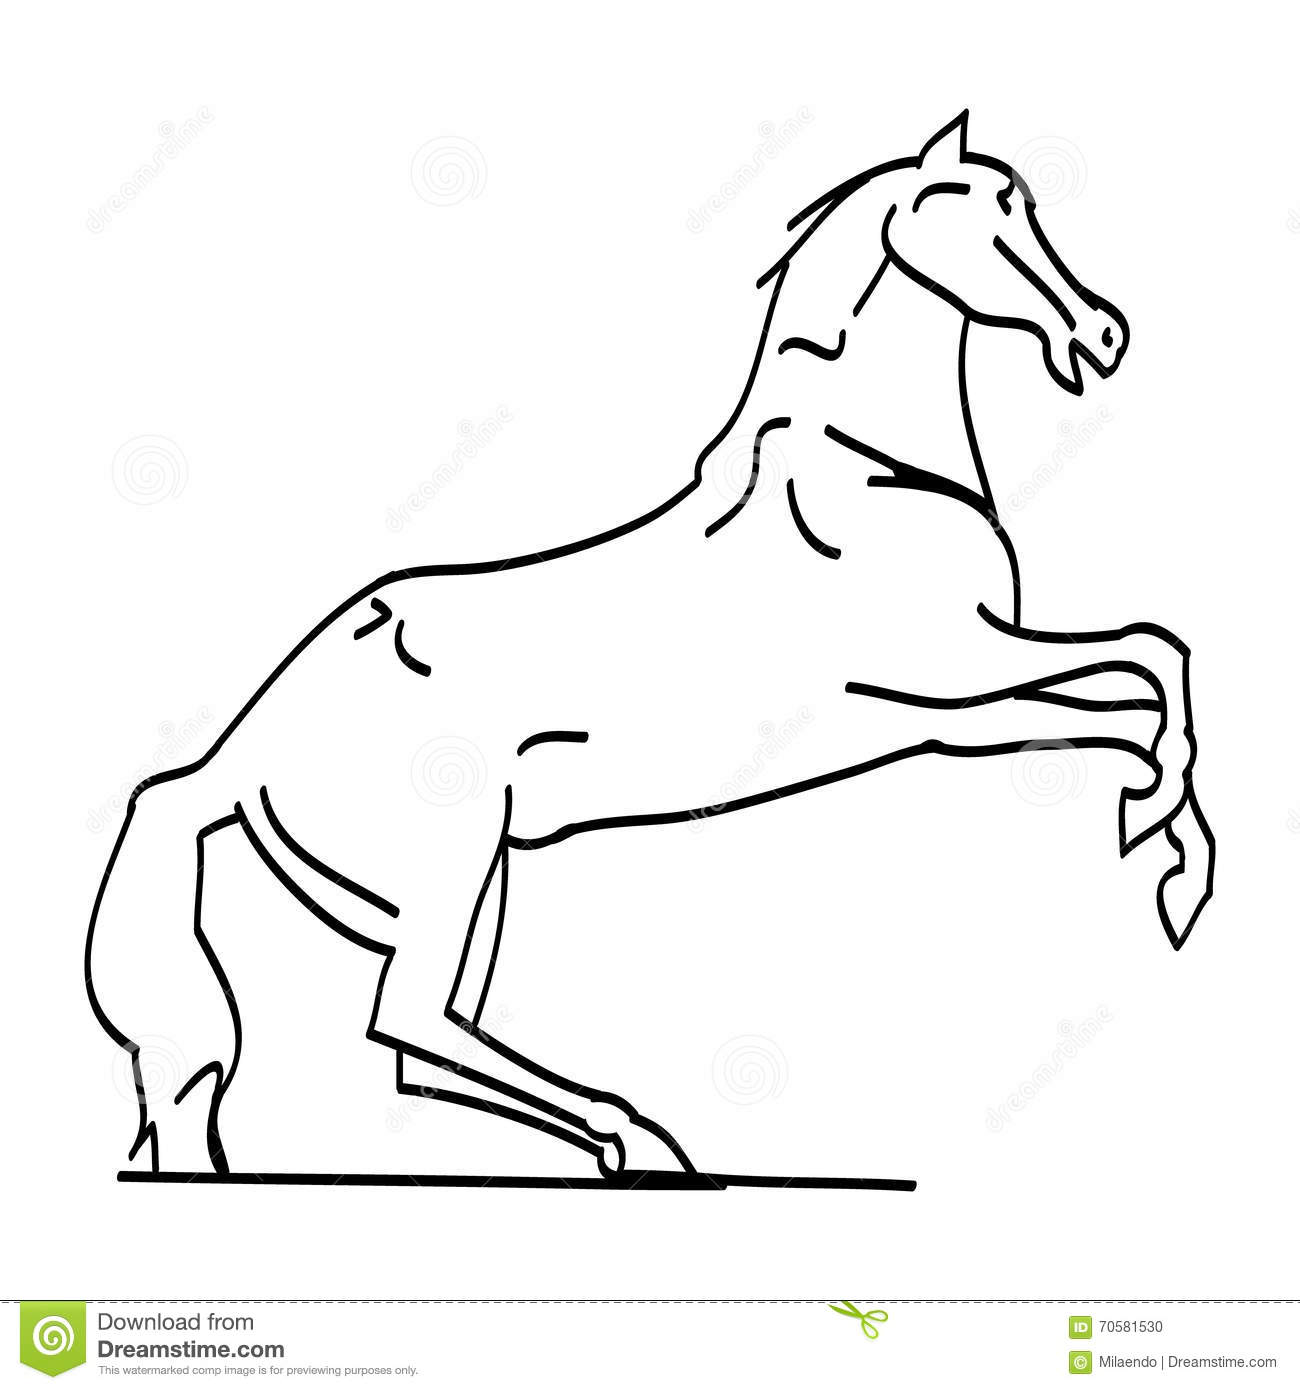 The Outline Of The Horse On Its Hind Legs Stock Vector